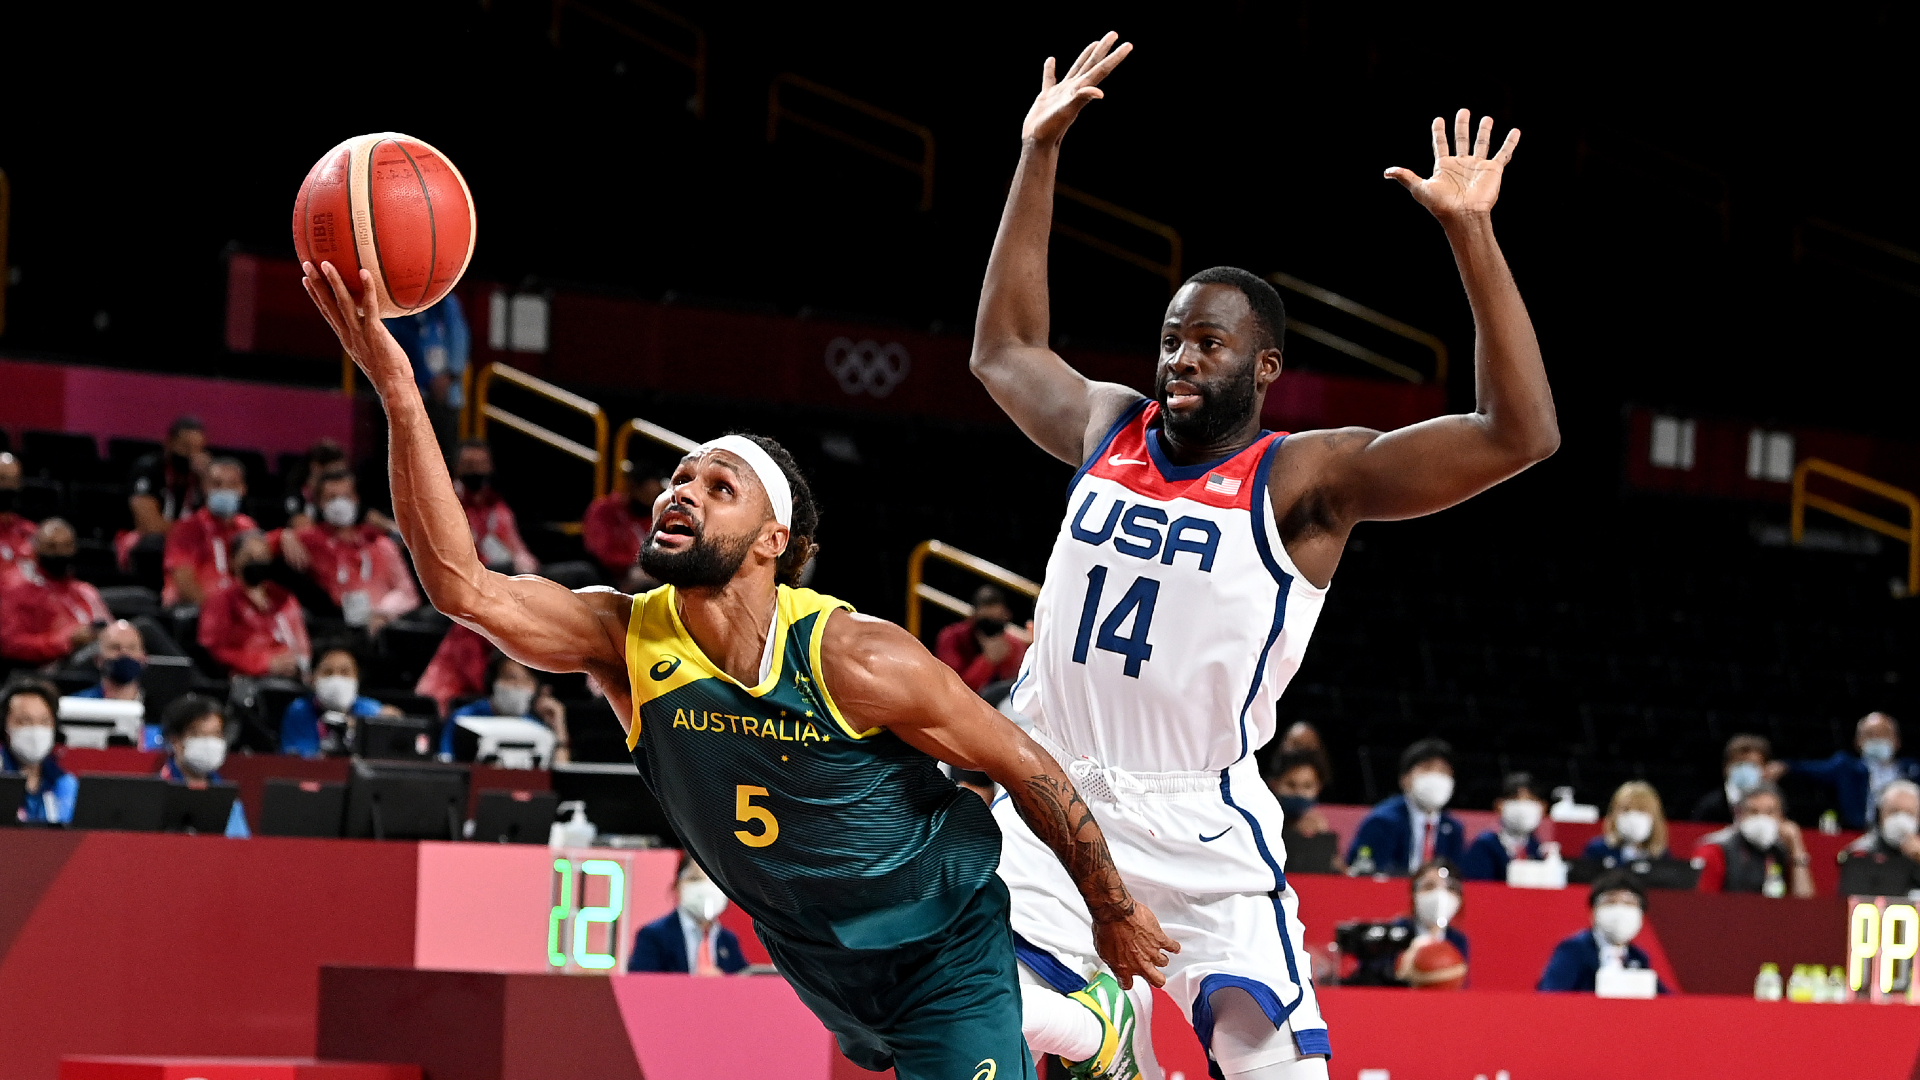 Live updates: Team USA takes on Australia in Olympic Semifinals